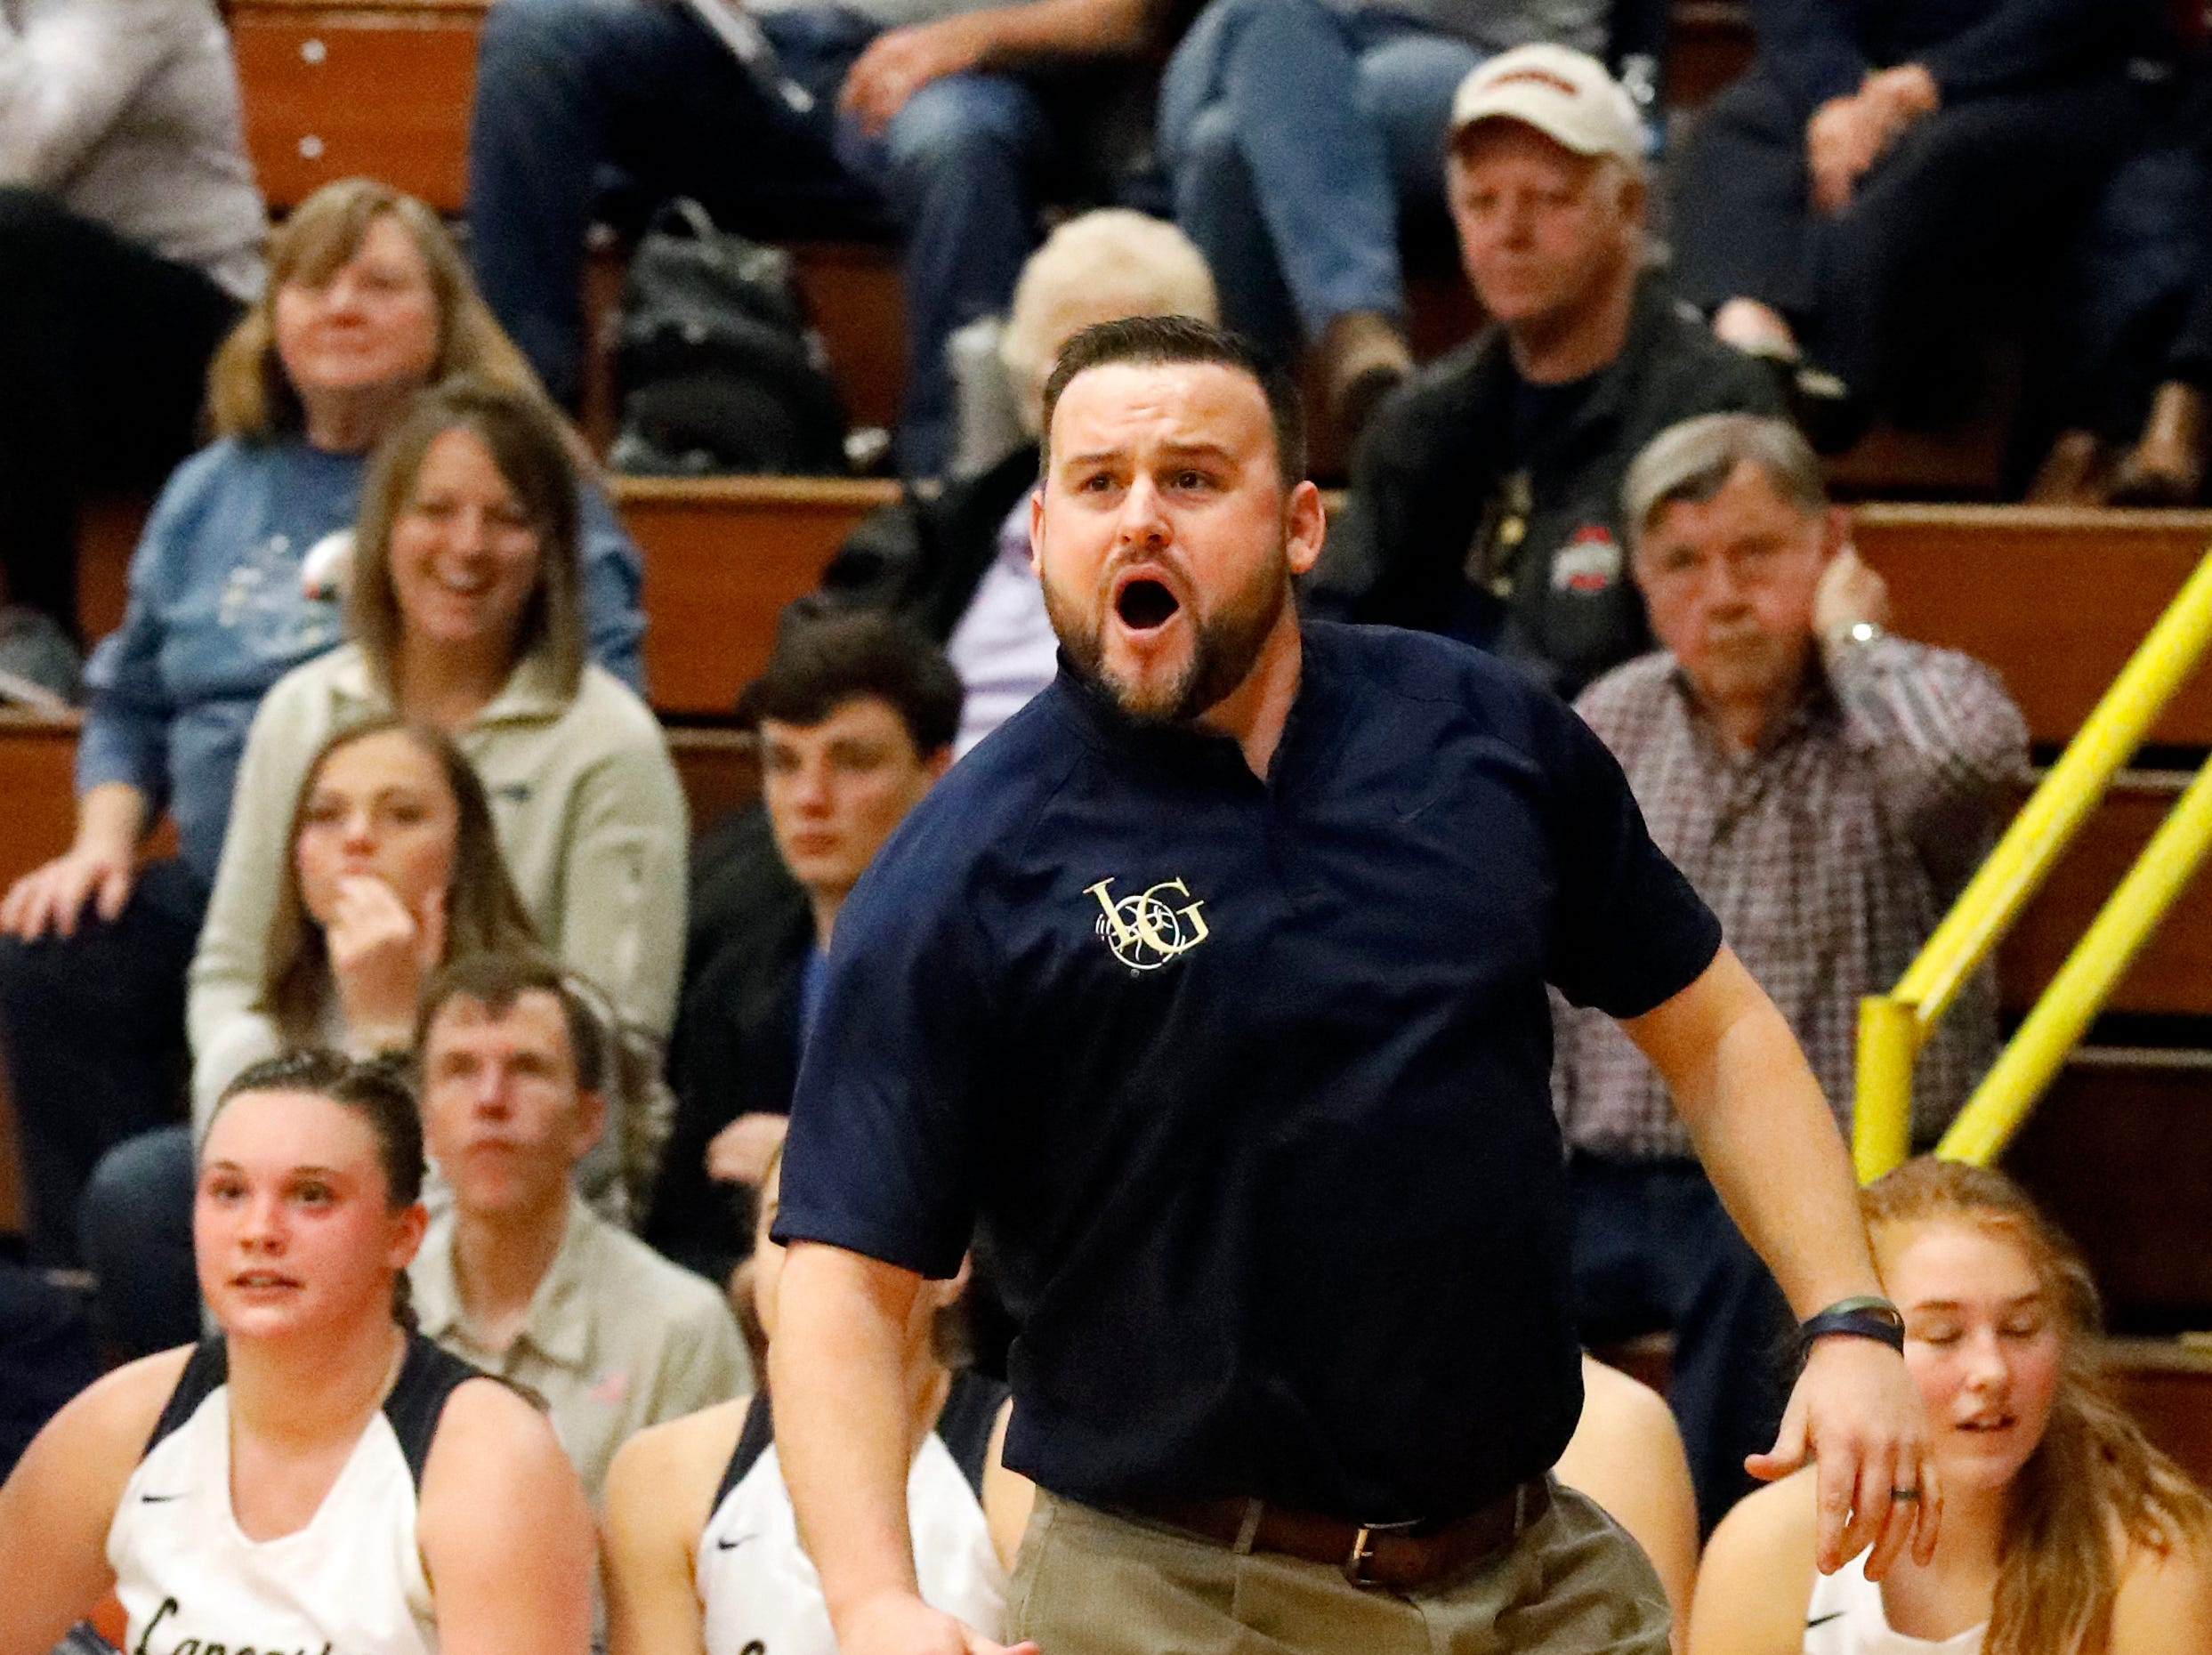 Lancaster coach Dusty Miller yells instructions to his players Friday night, Dec. 28, 2018, during the Golden Gales 43-37 win over Licking Heights.